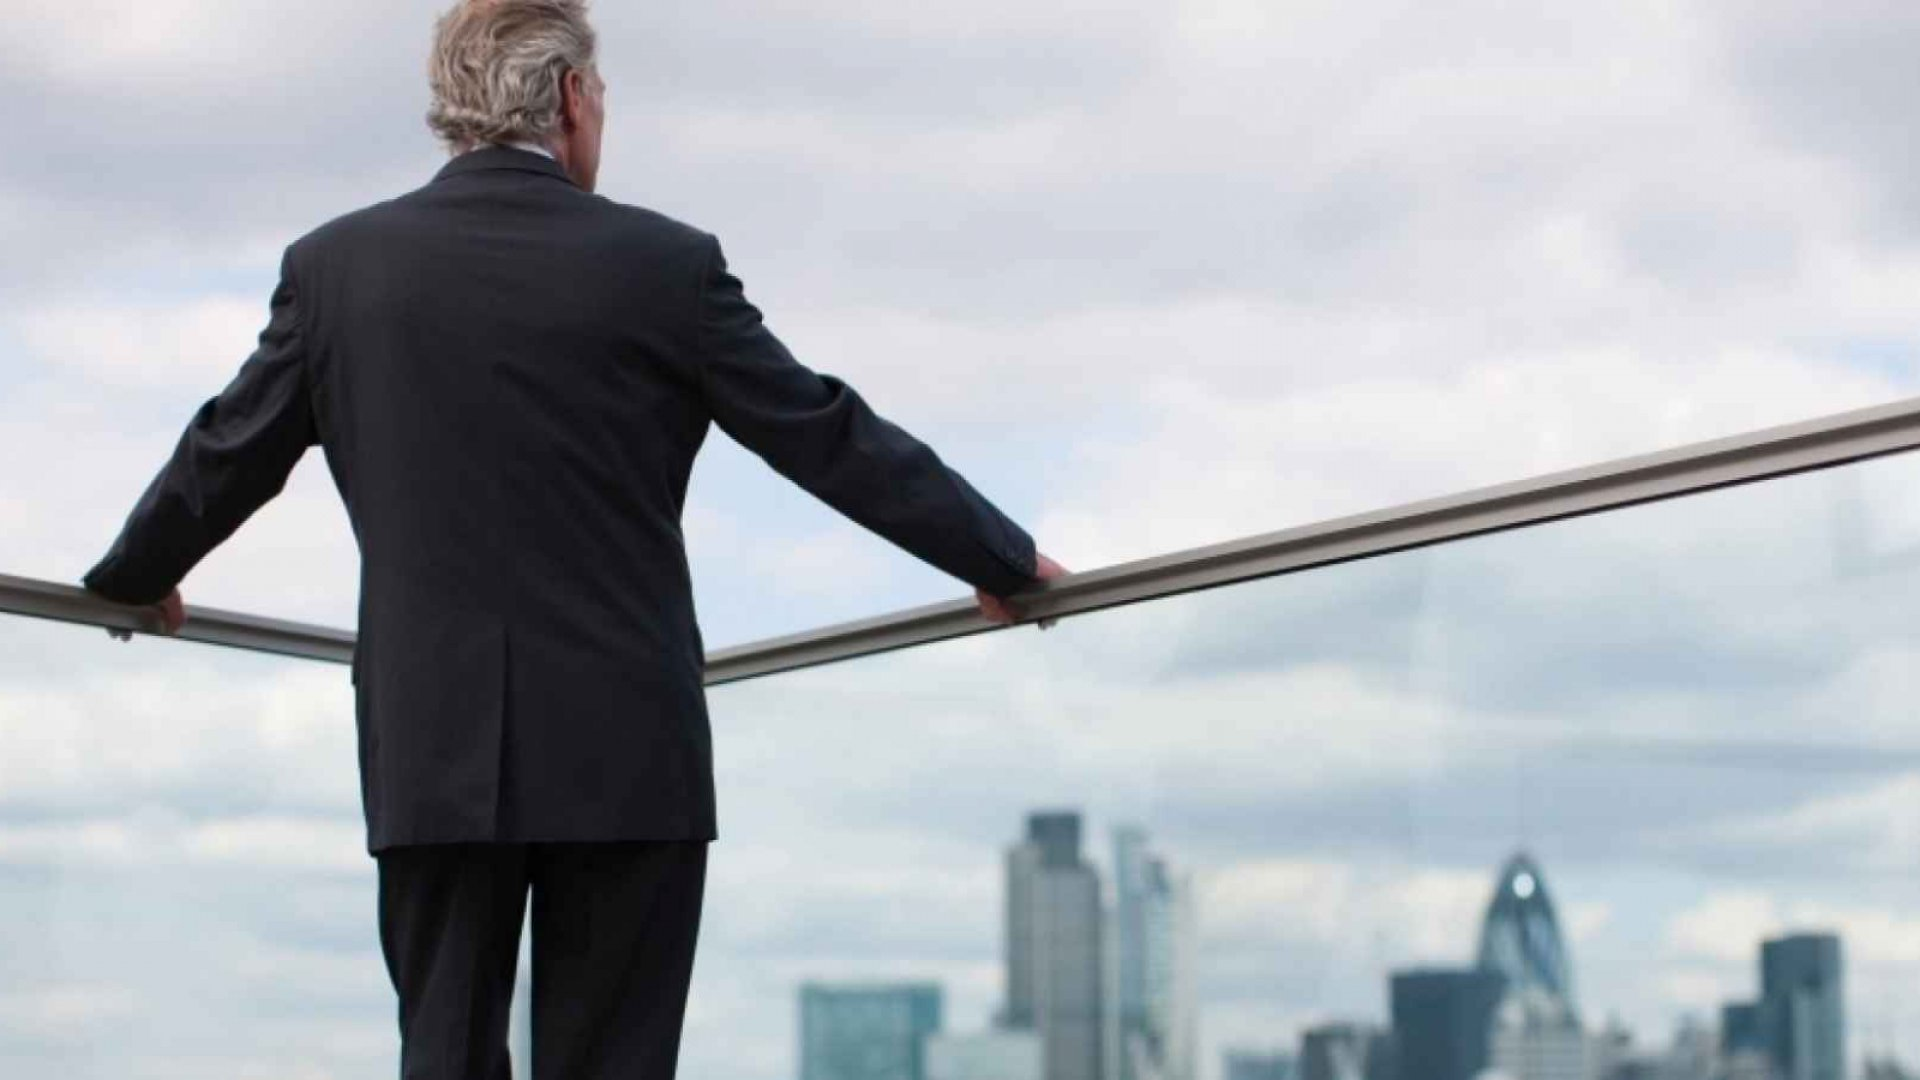 5 Difficult Things That Powerful People Do